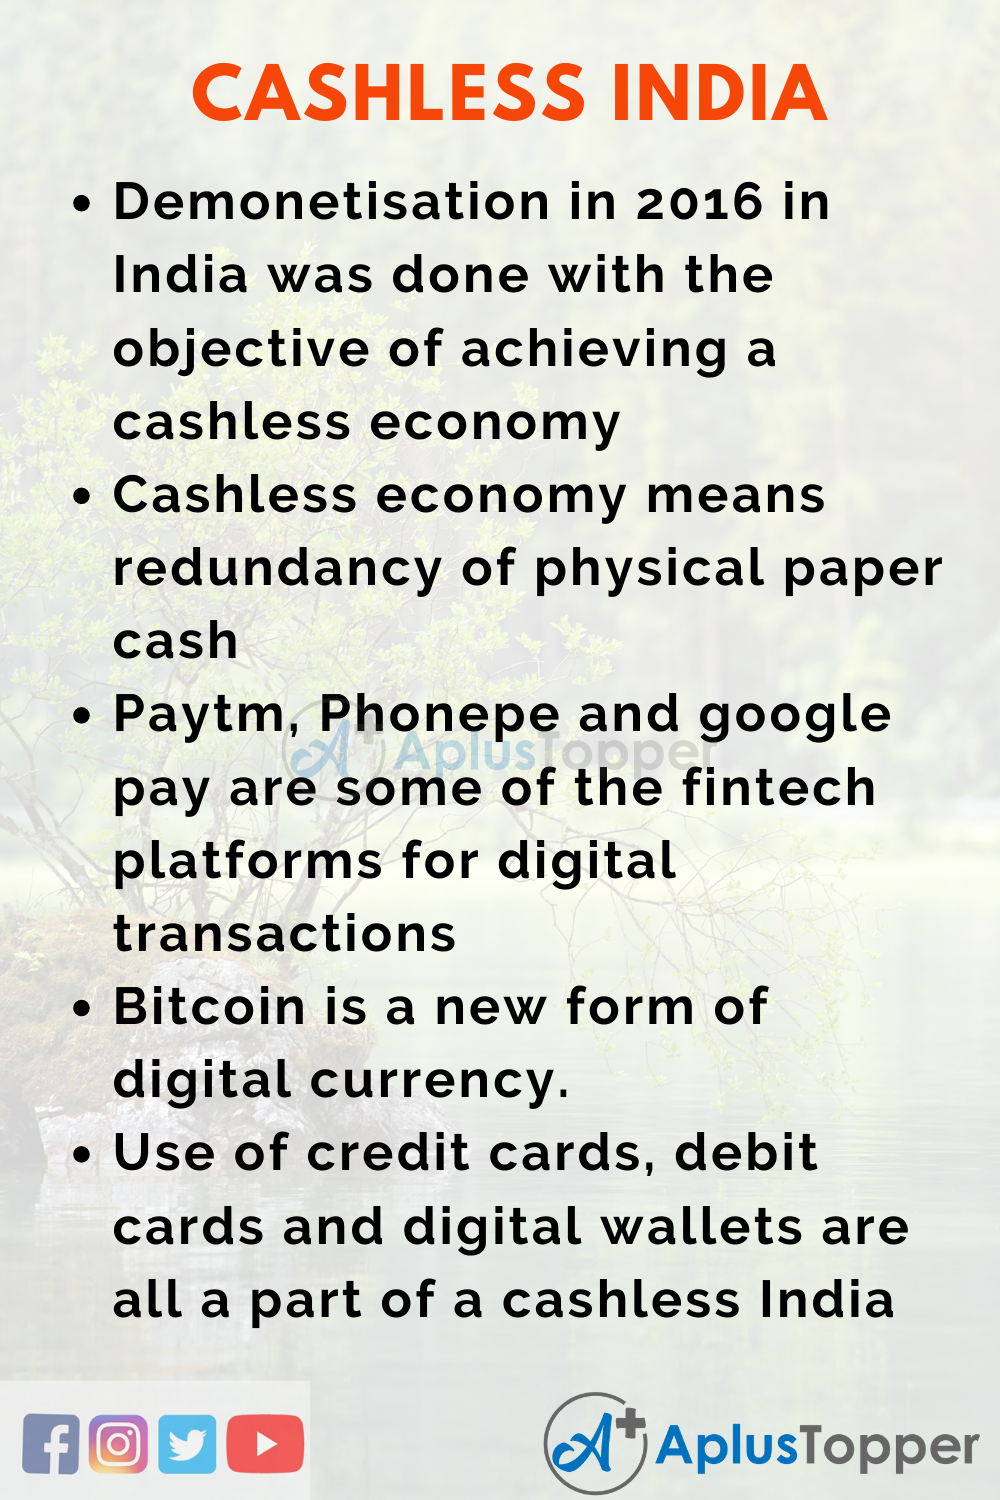 Cashless India Essay